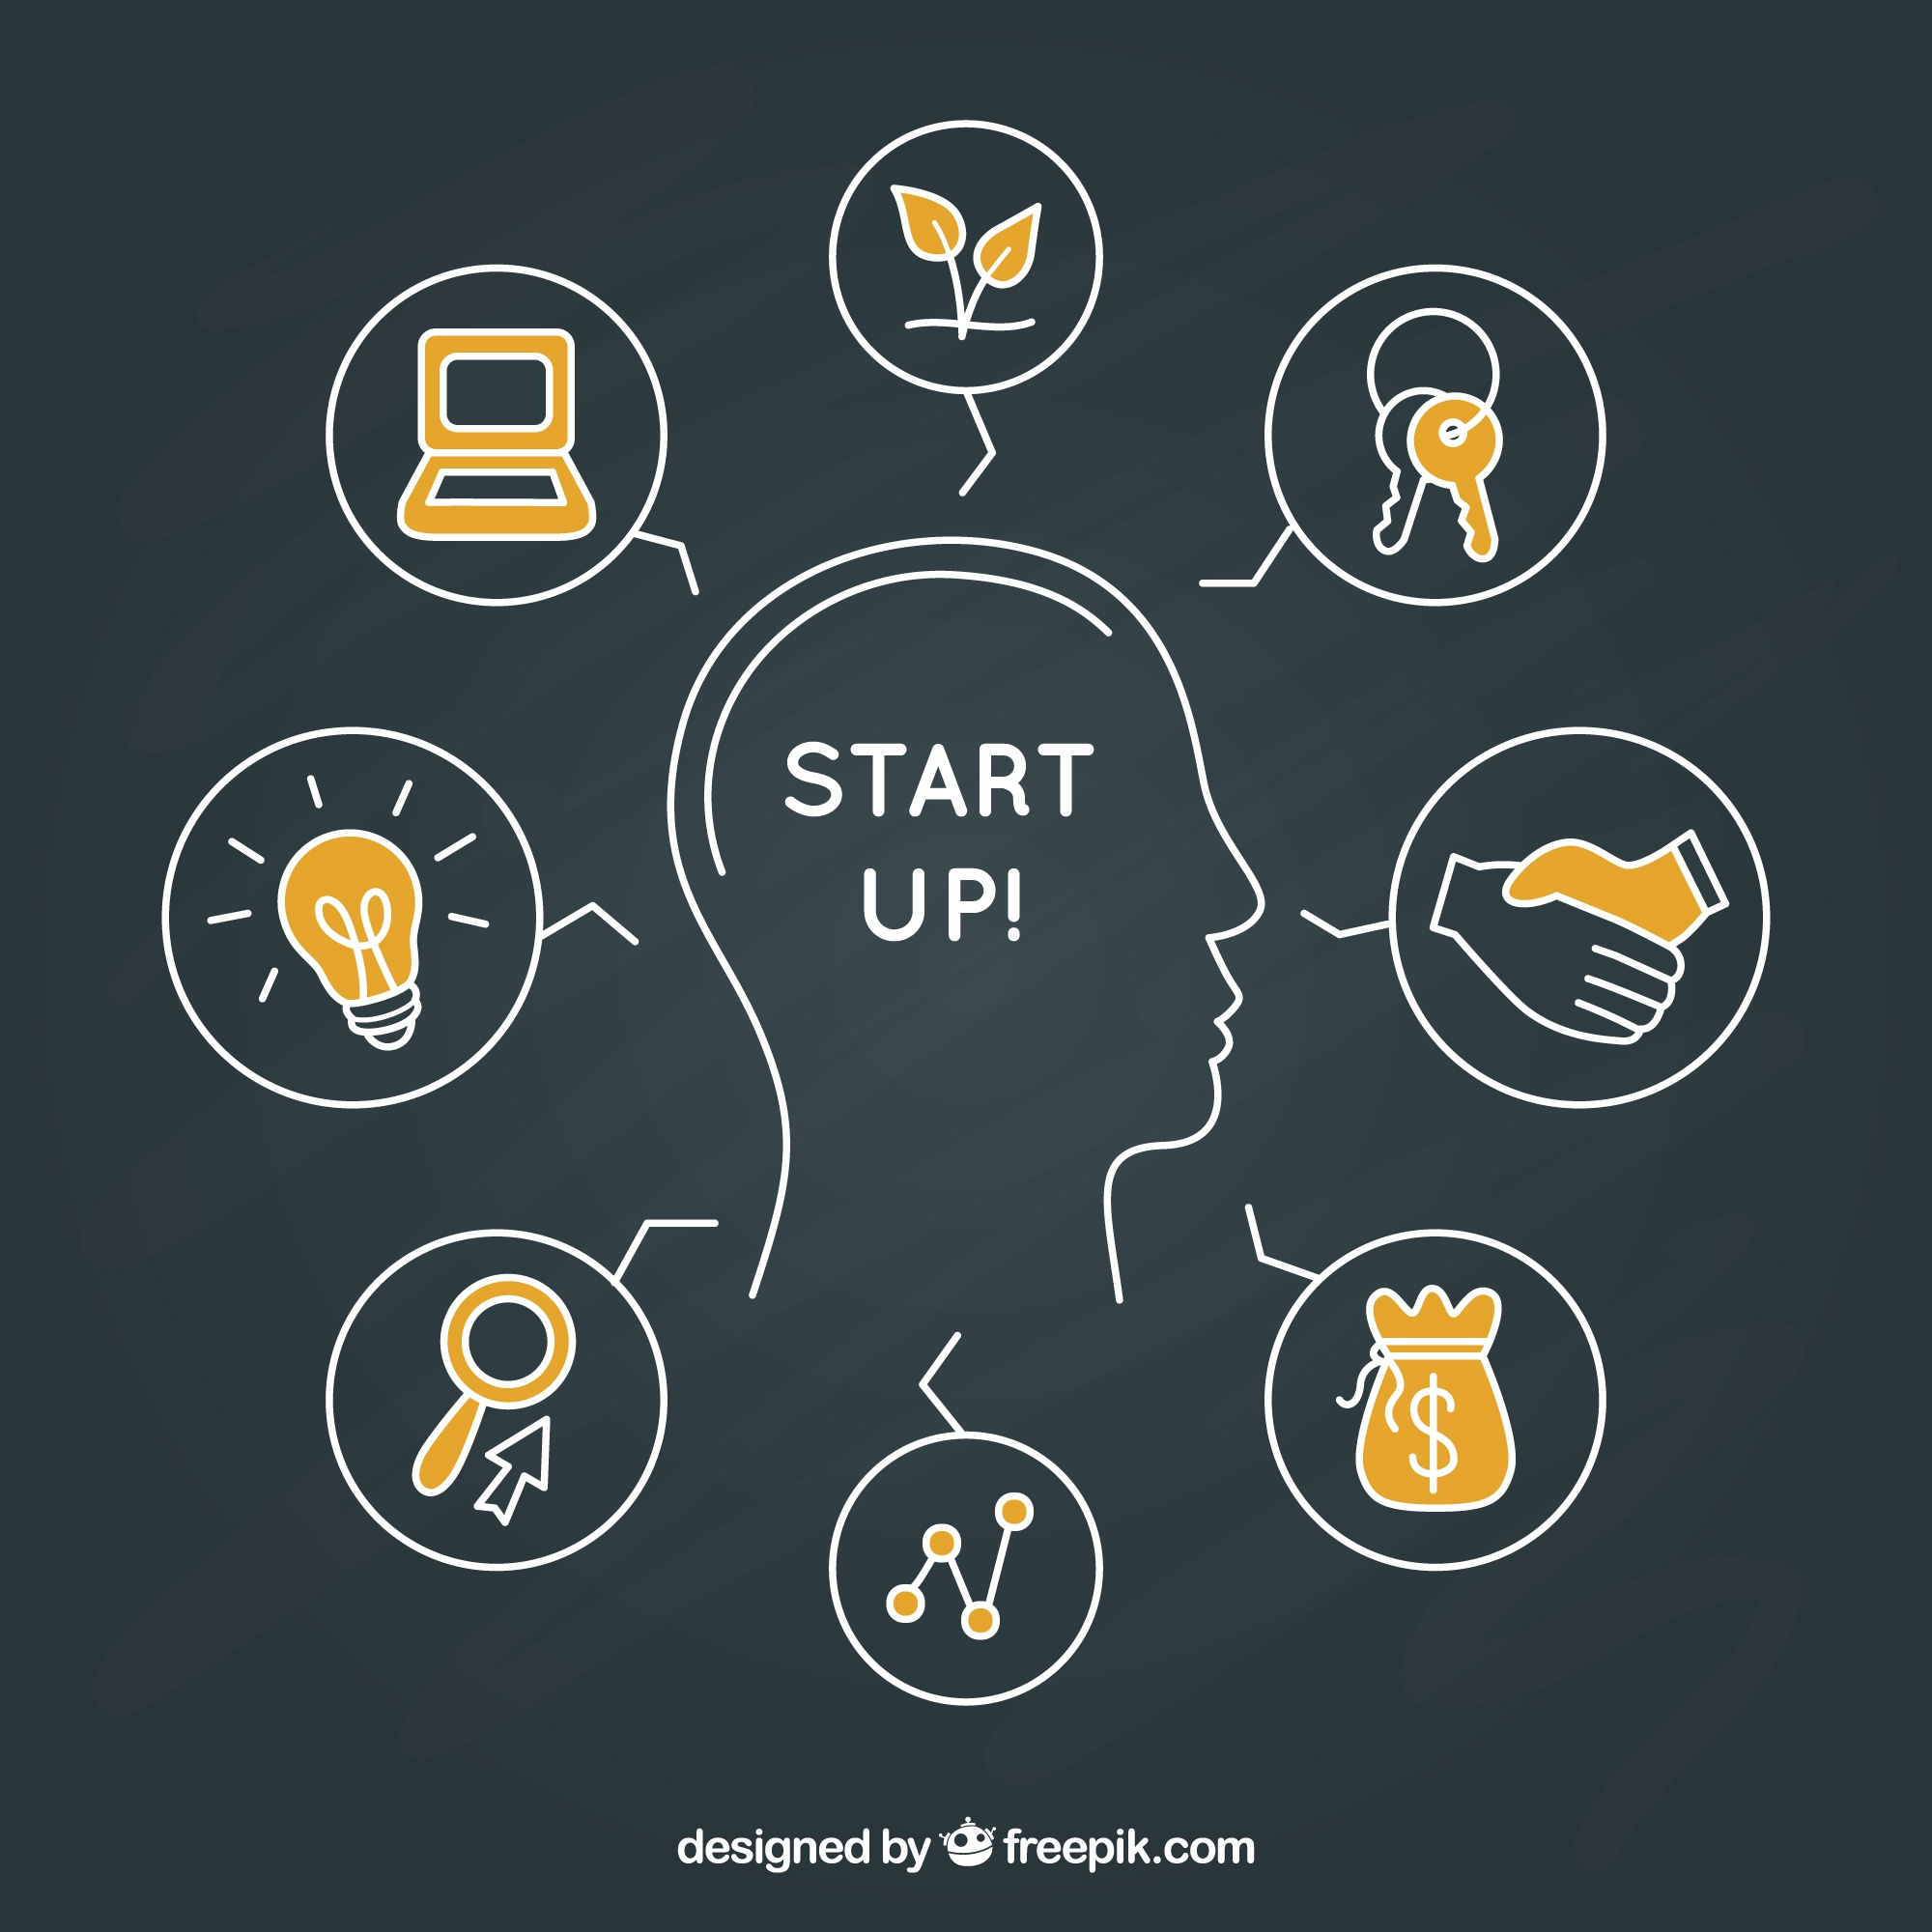 Start up concepts